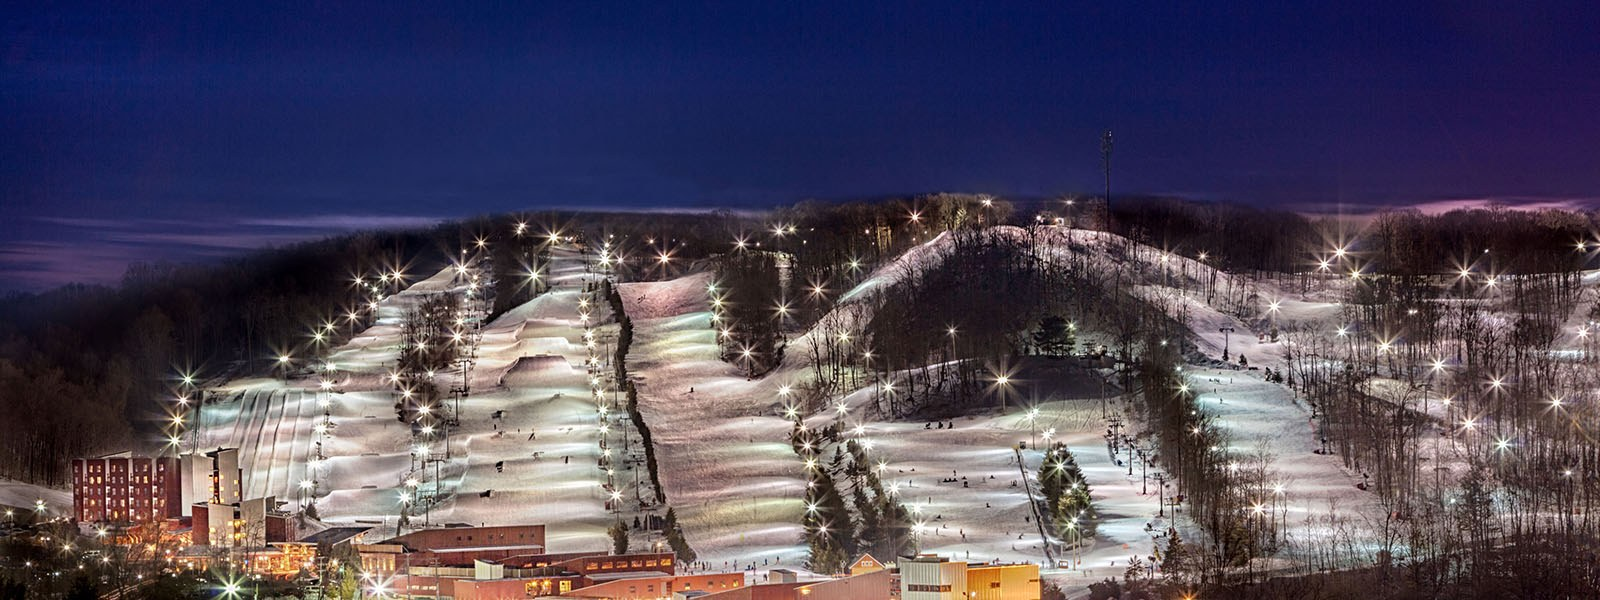 ski area lit up at night